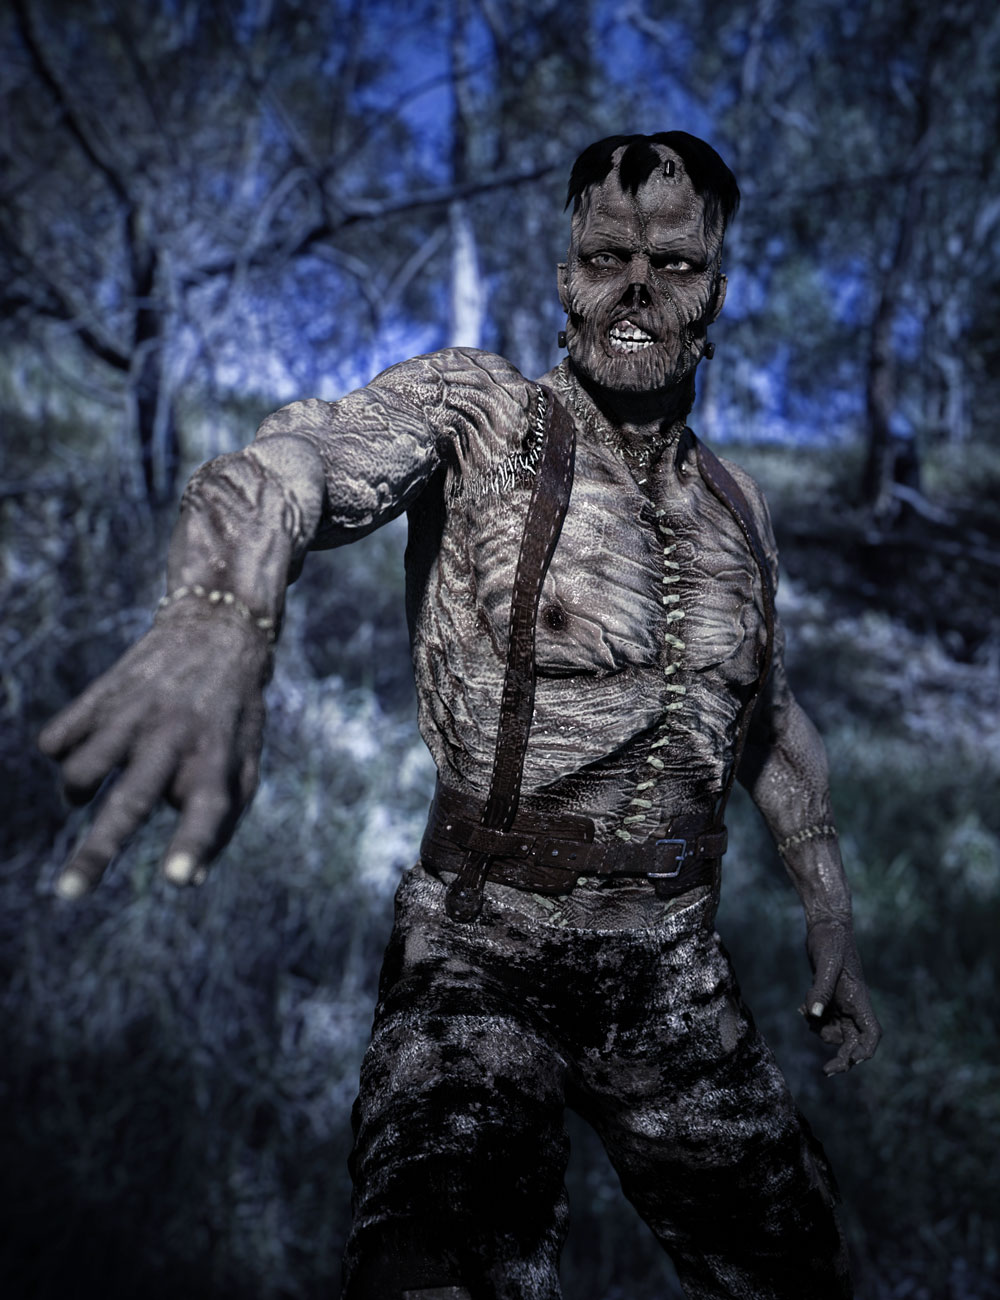 The Monster HD for Genesis 8 Male by: GreybroSixus1 Media, 3D Models by Daz 3D